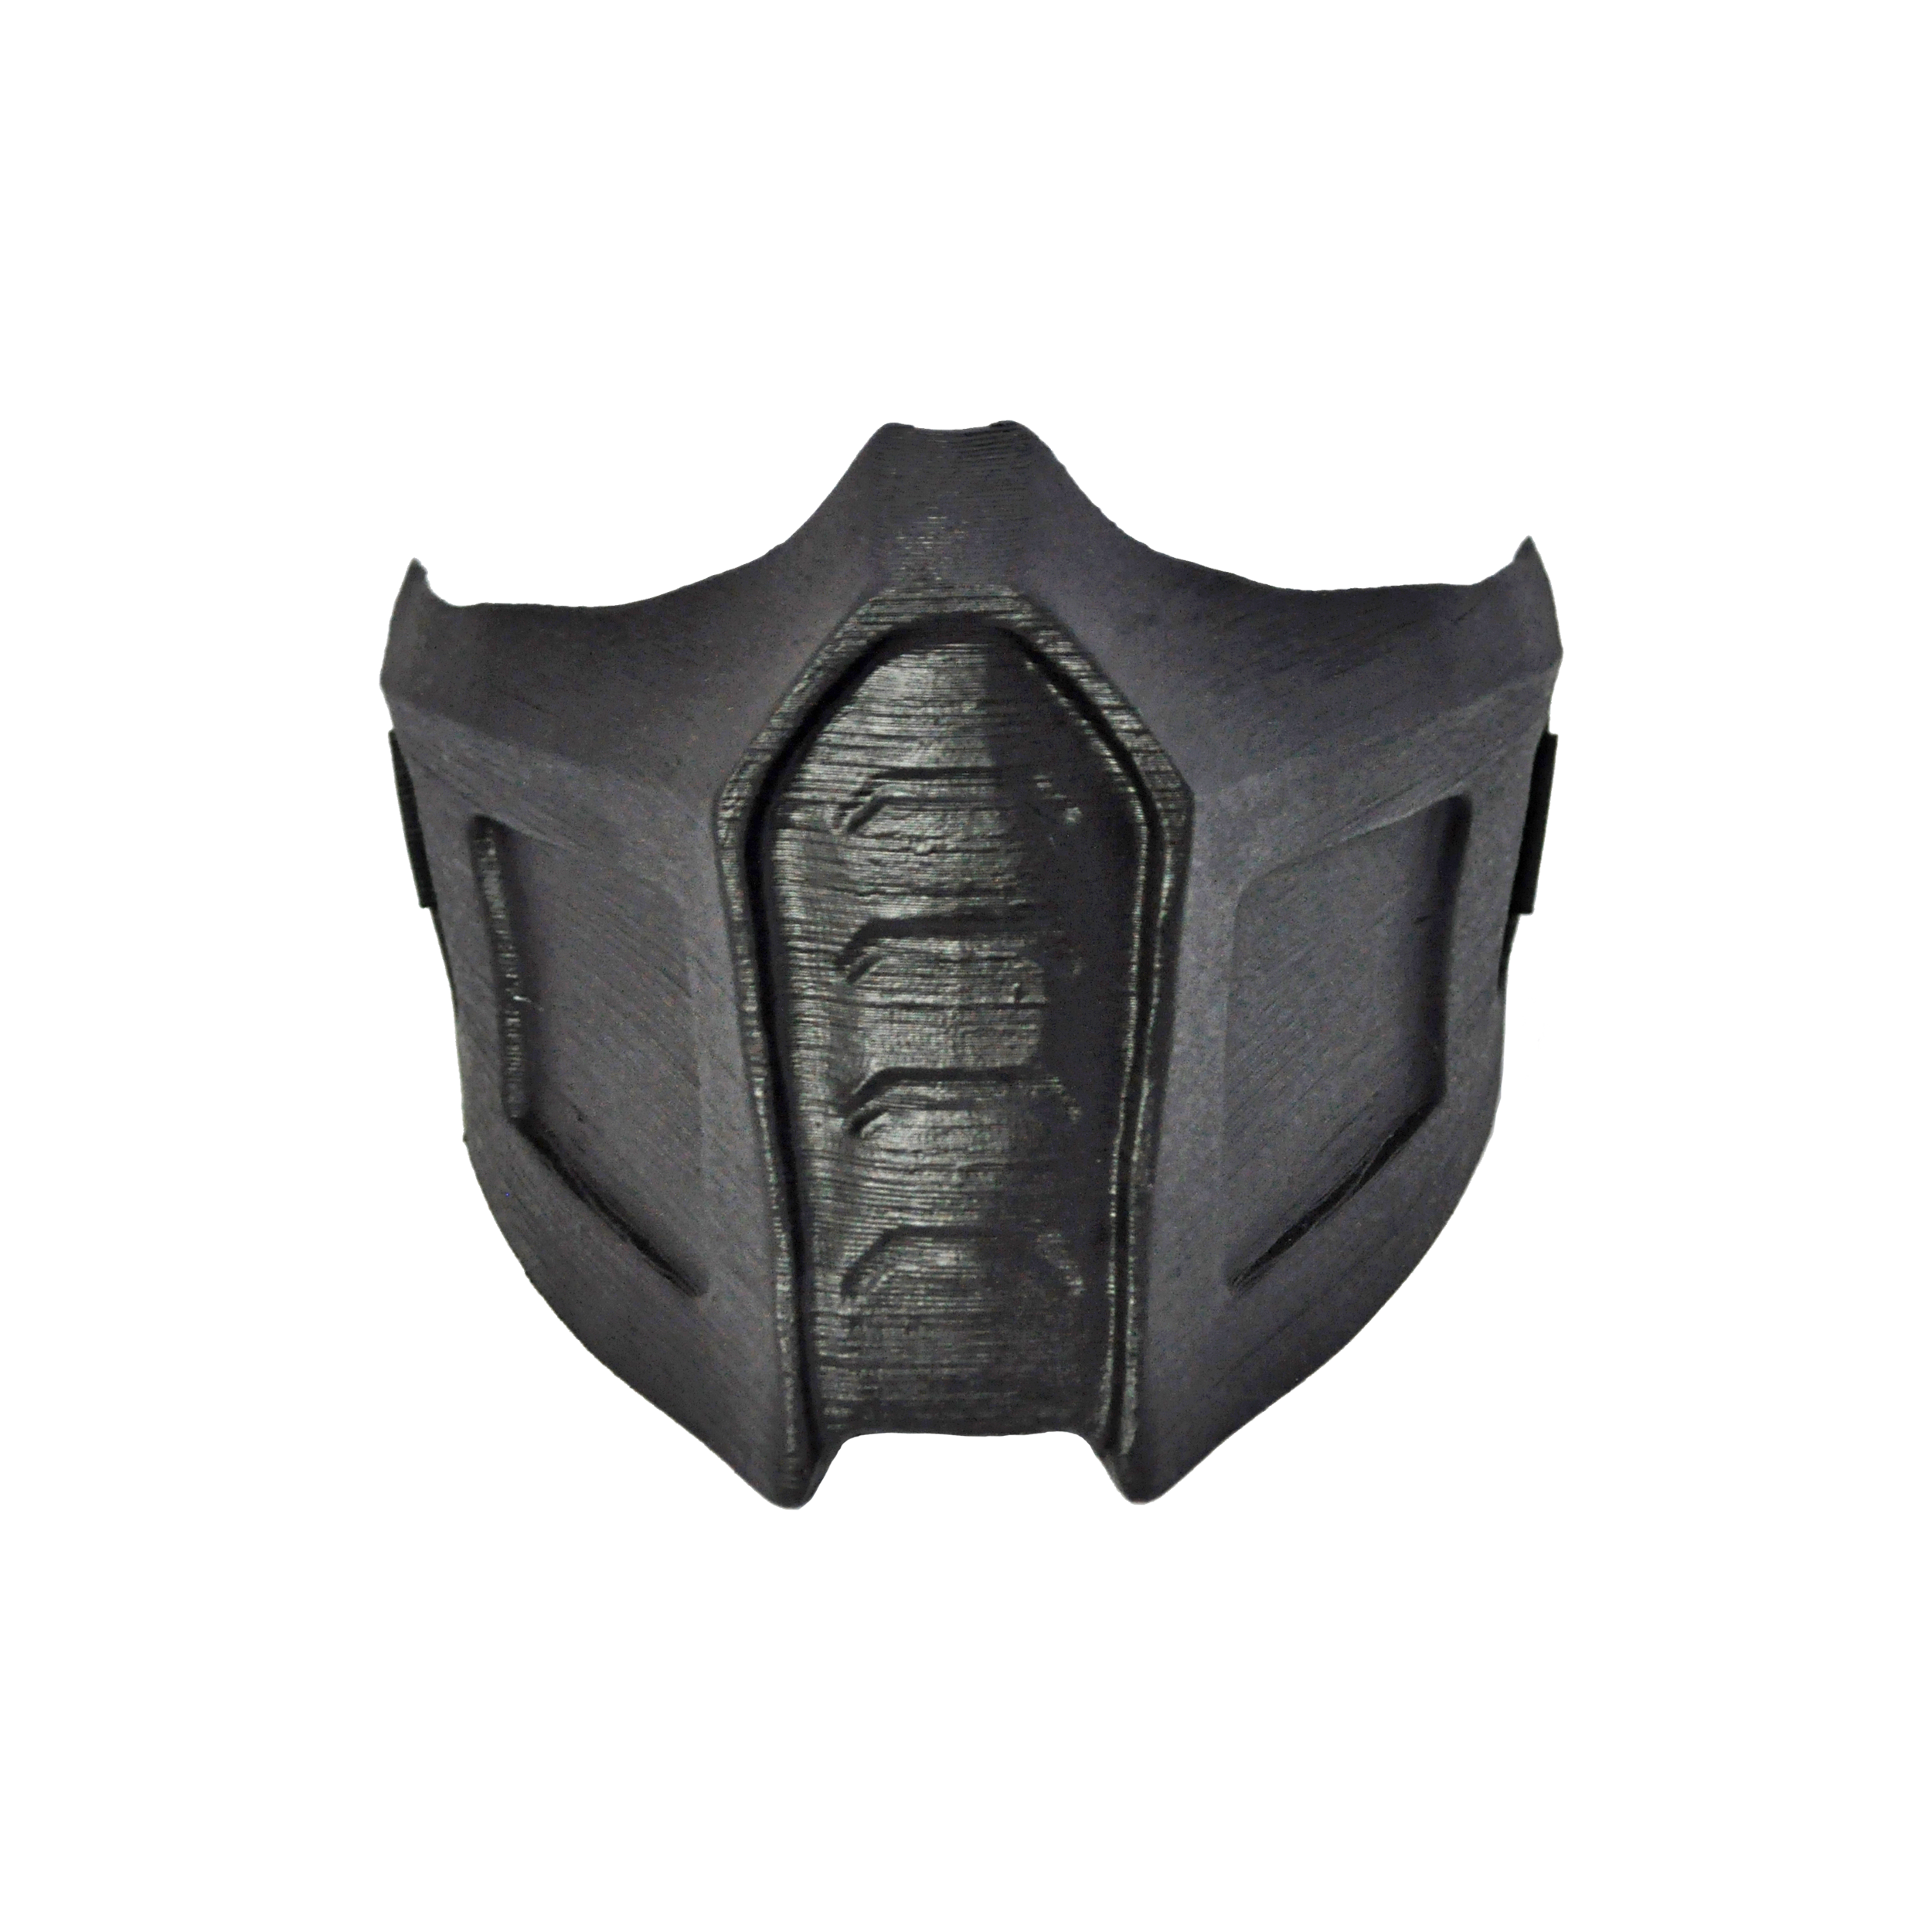 Noob Saibot Mask From Mk 9 Cosplay Or Airsoft Mask Costumes From Destiny Star Wars Overwatch Designedby3d Com Noob Saibot Airsoft Mask Mortal Kombat Mask